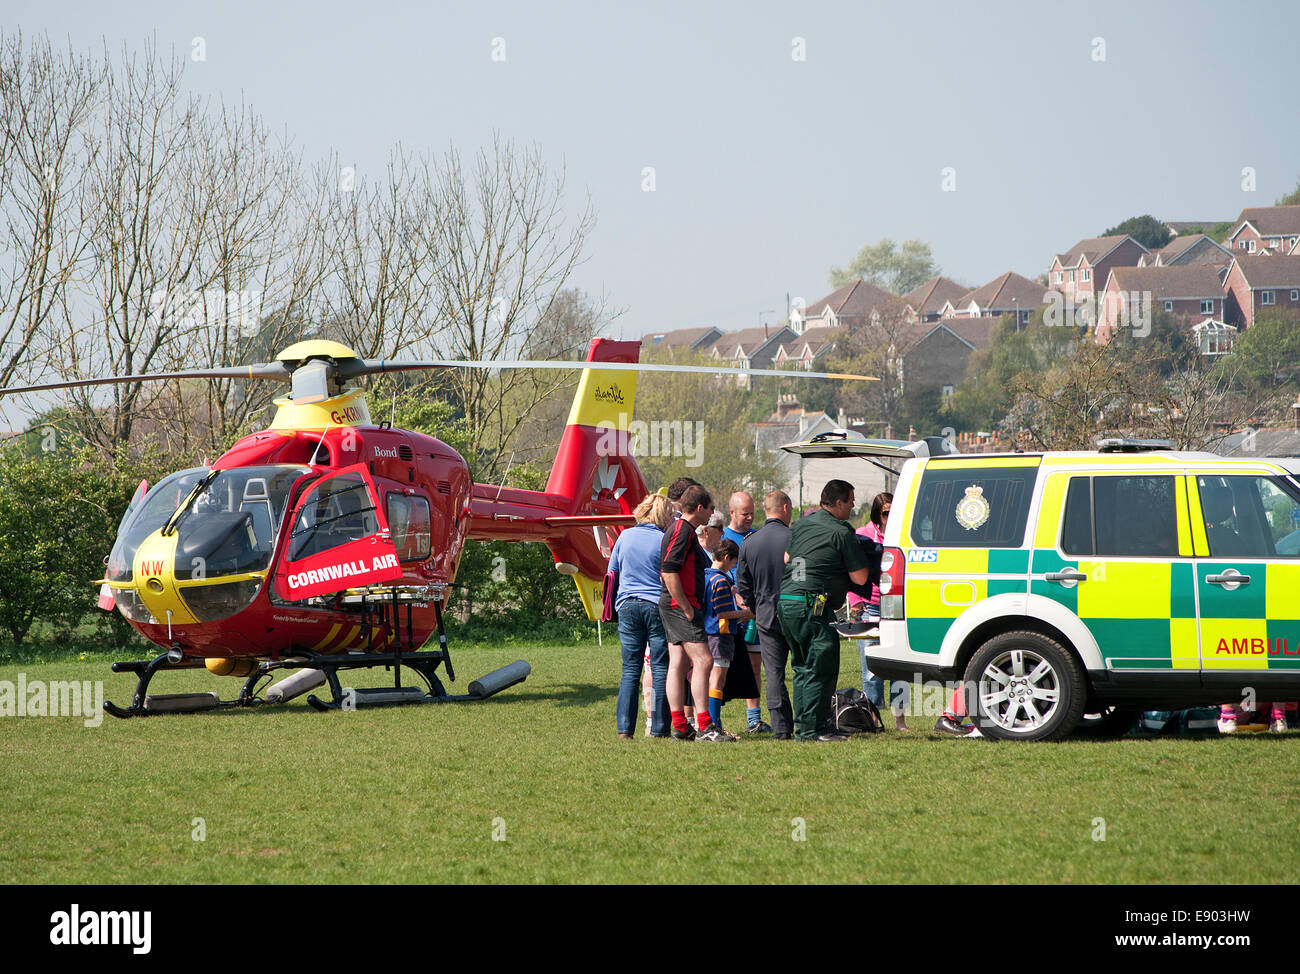 The Cornwall Air Ambulance attending an incident at a rugby match in Cornwall, UK - Stock Image